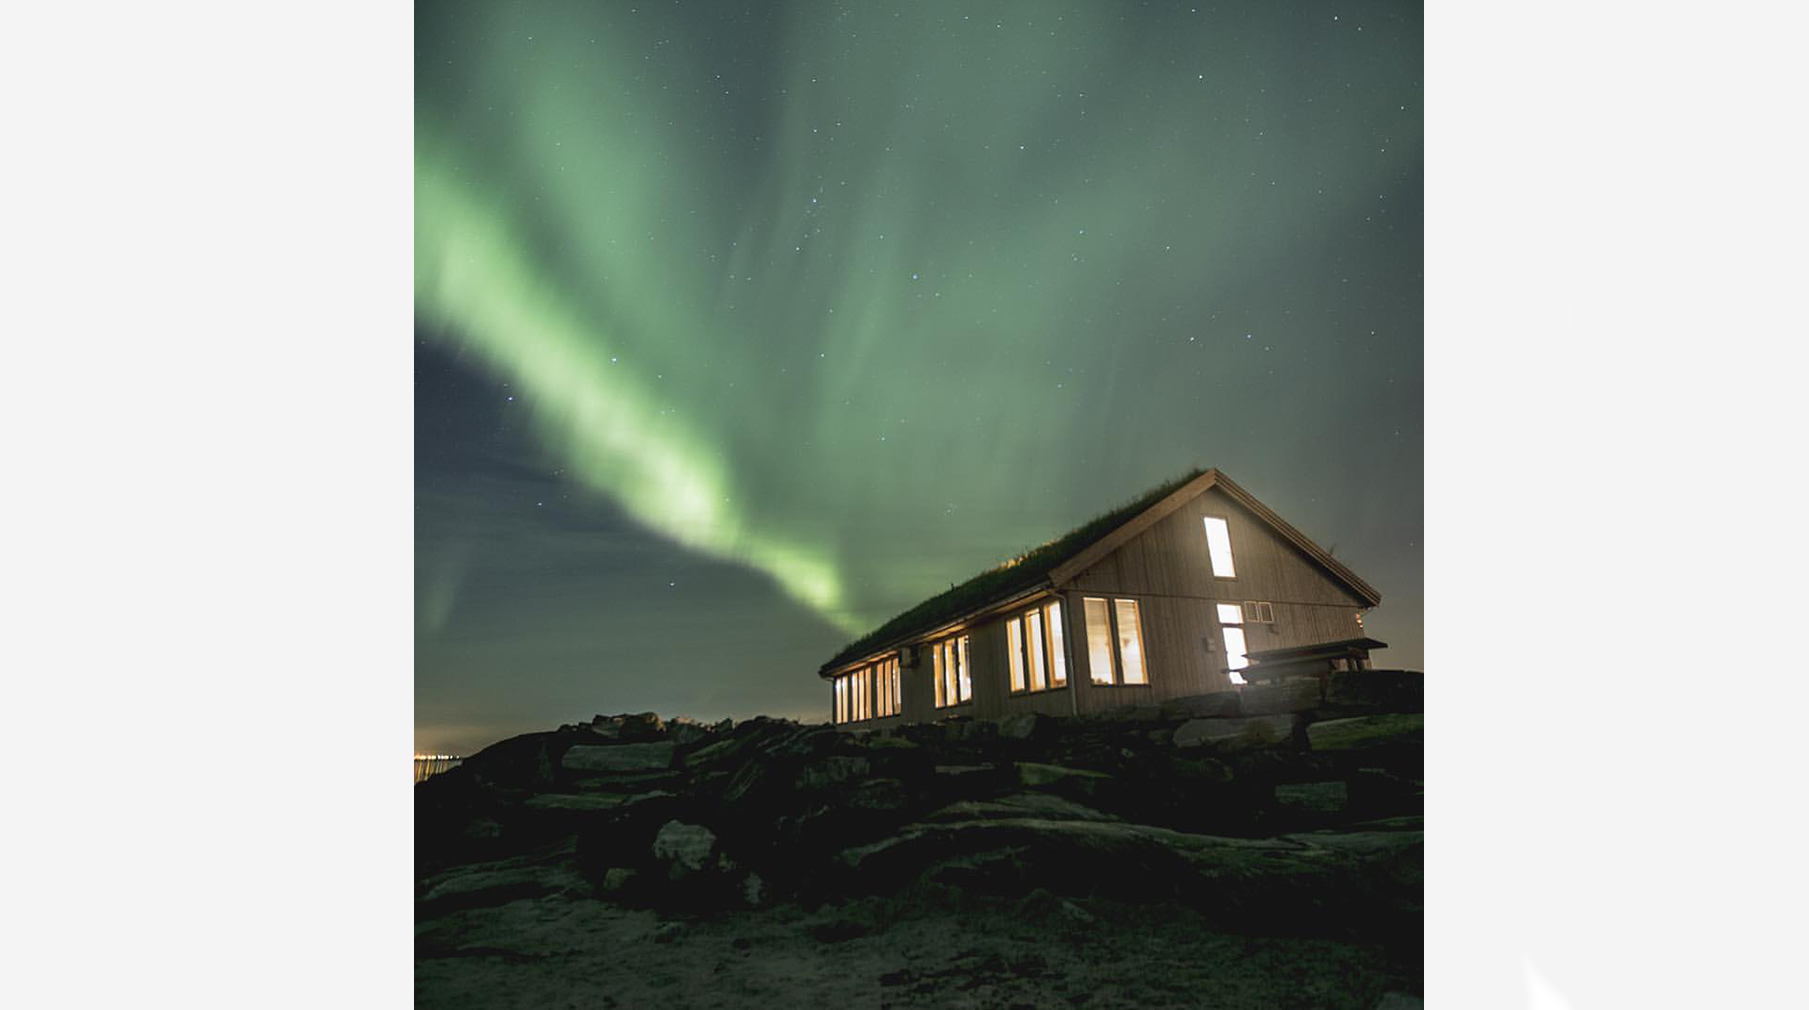 Ocean Sound Recording Studio in Giske, which has views of the Northern lights for added inspiration